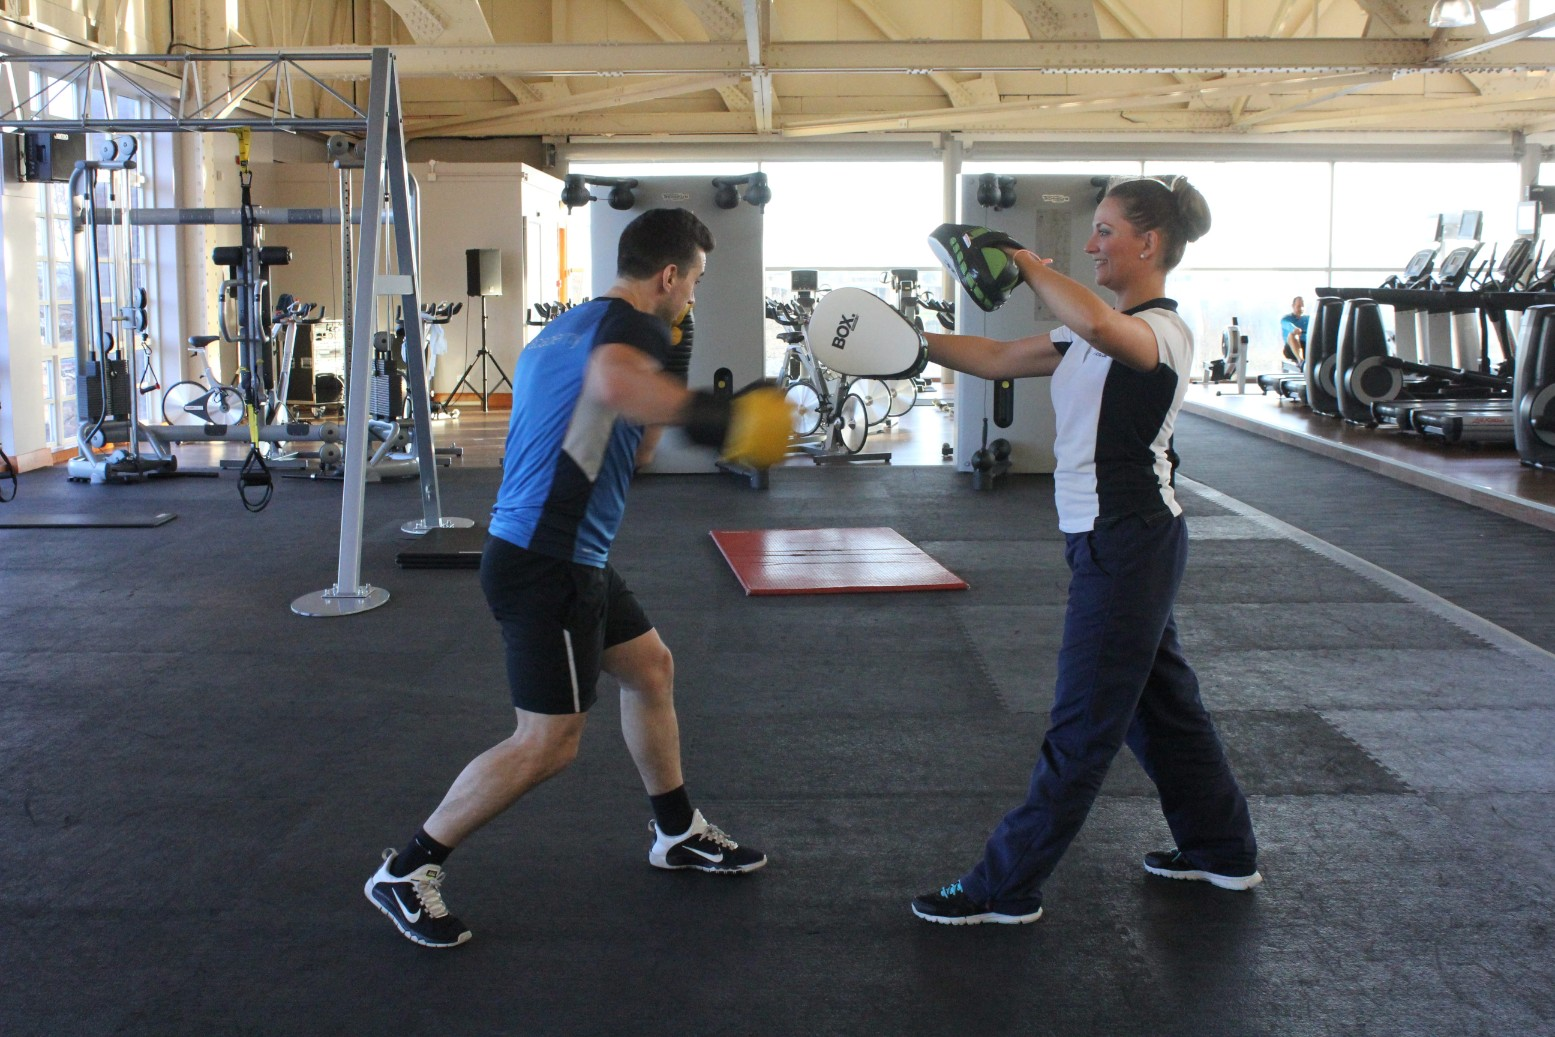 One to one personal training with Physio.co.uk